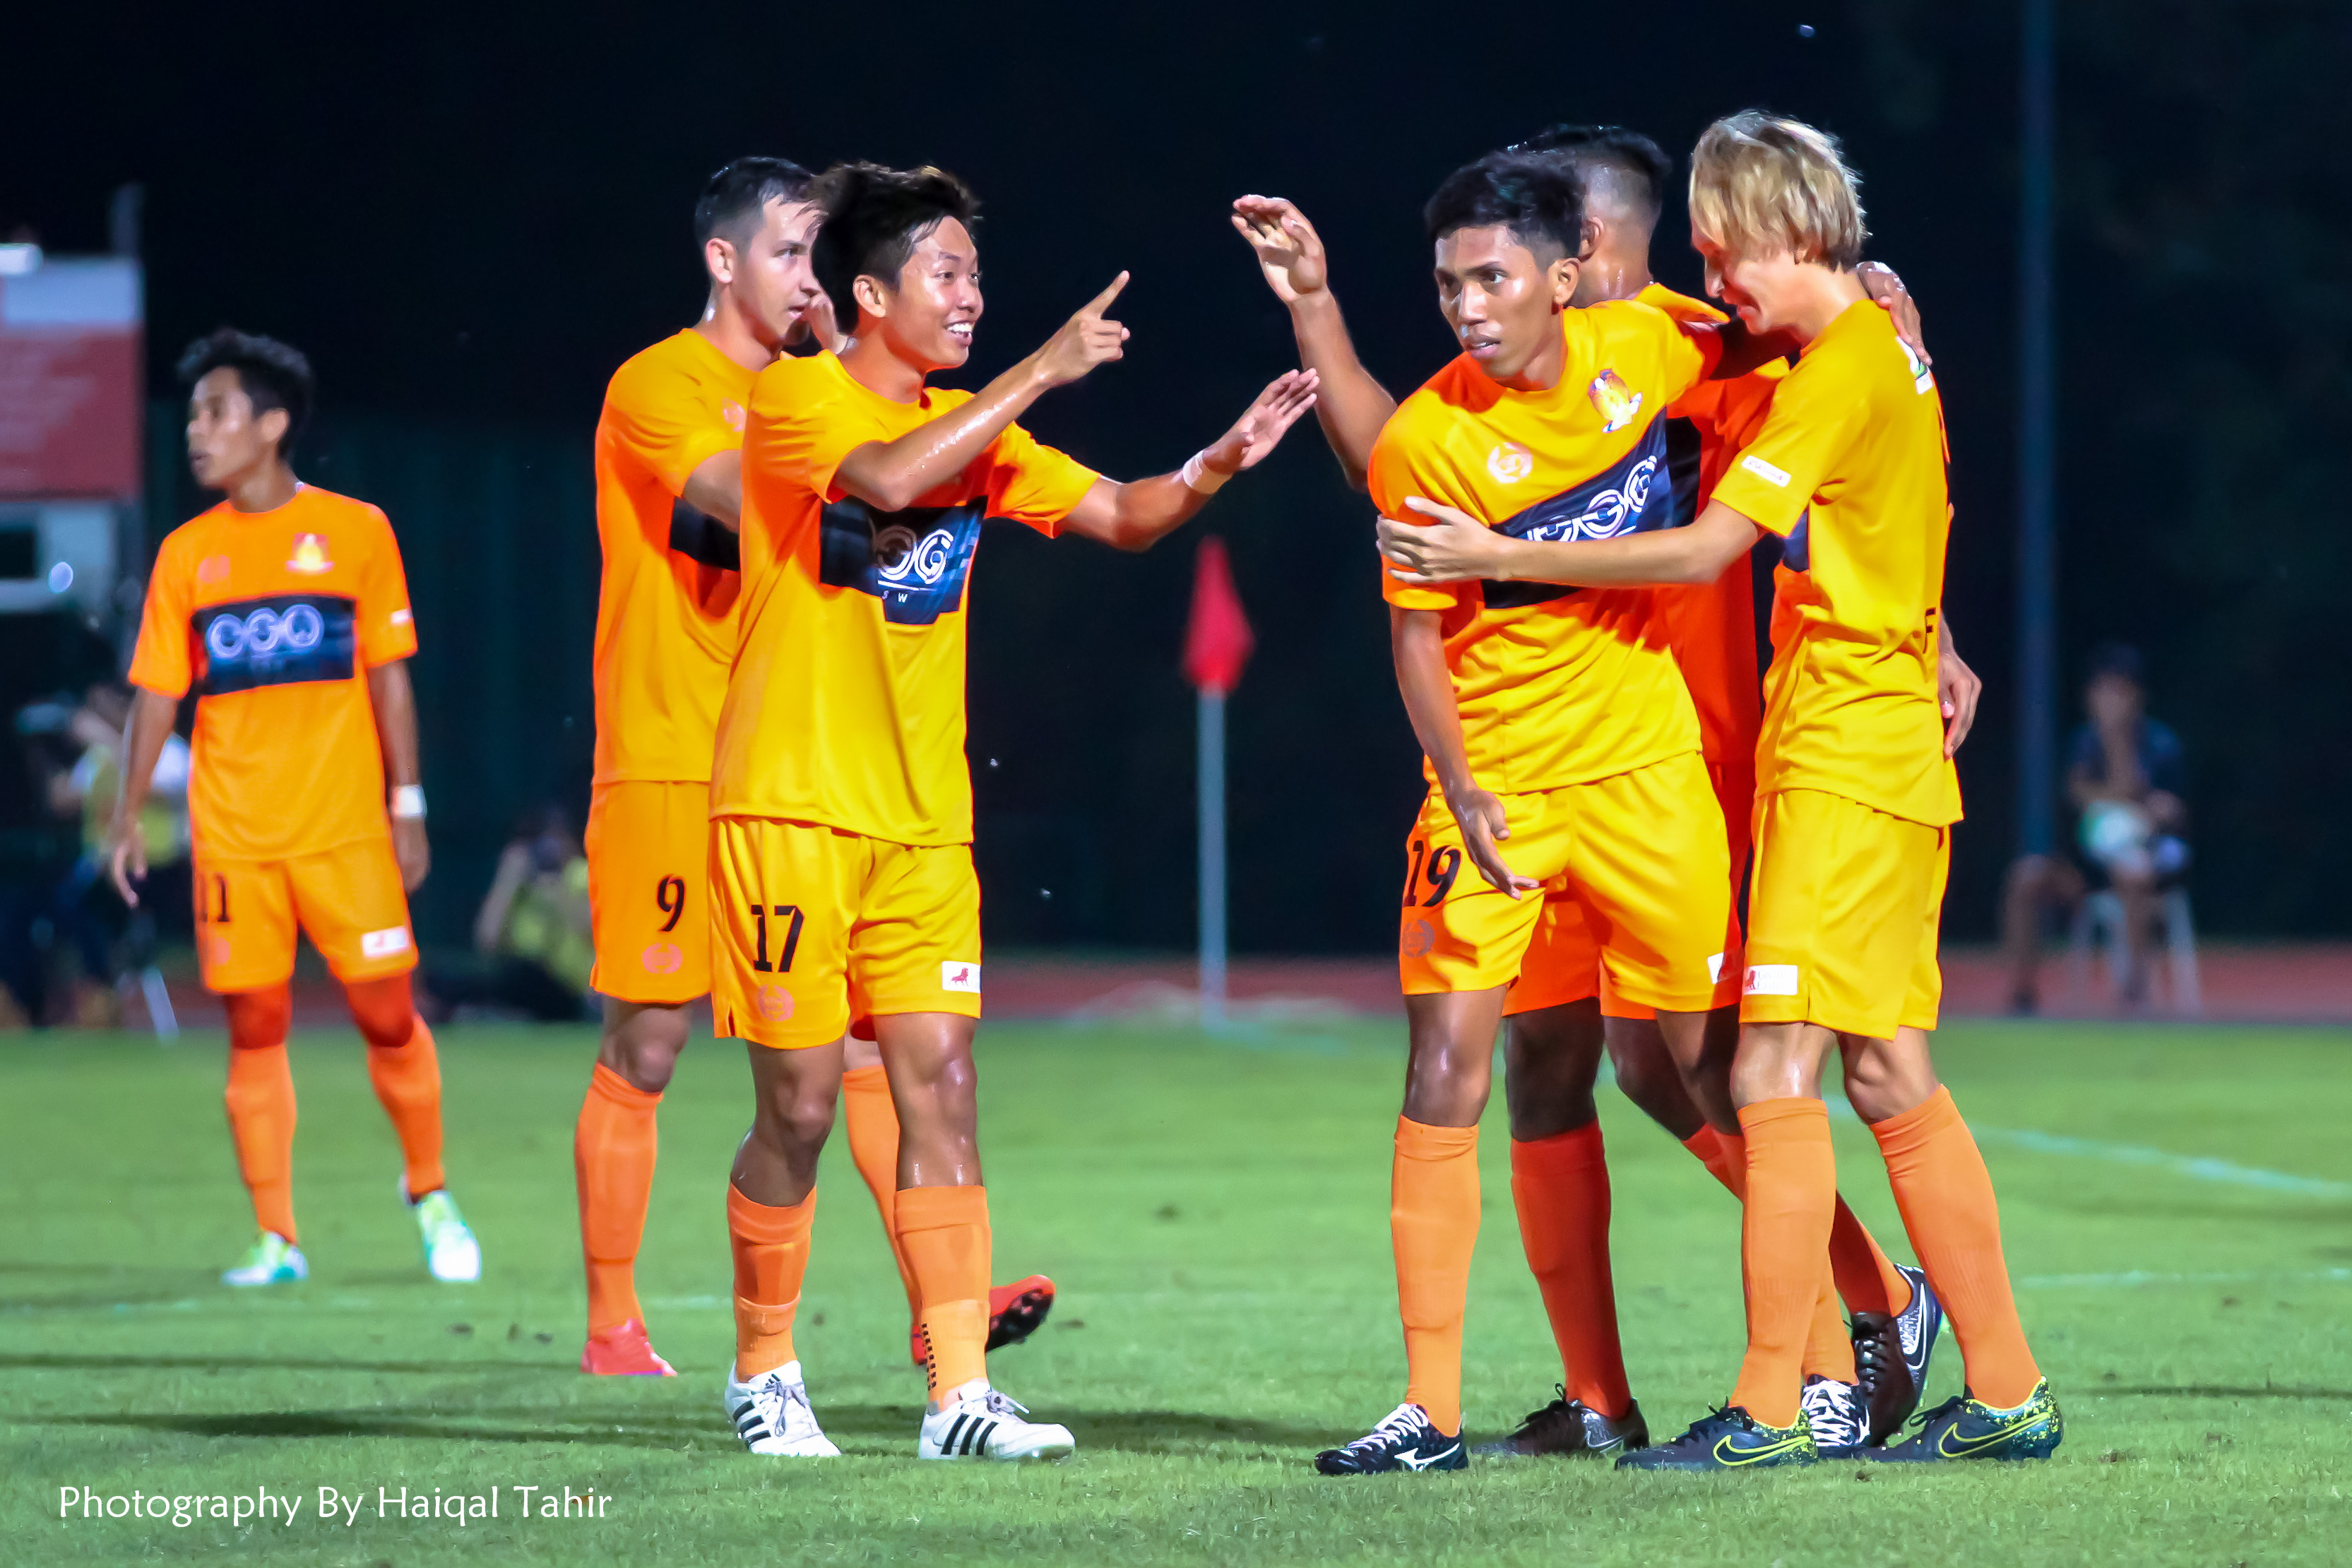 Goal scorer Fumiya Kogure celebrate with teammates.